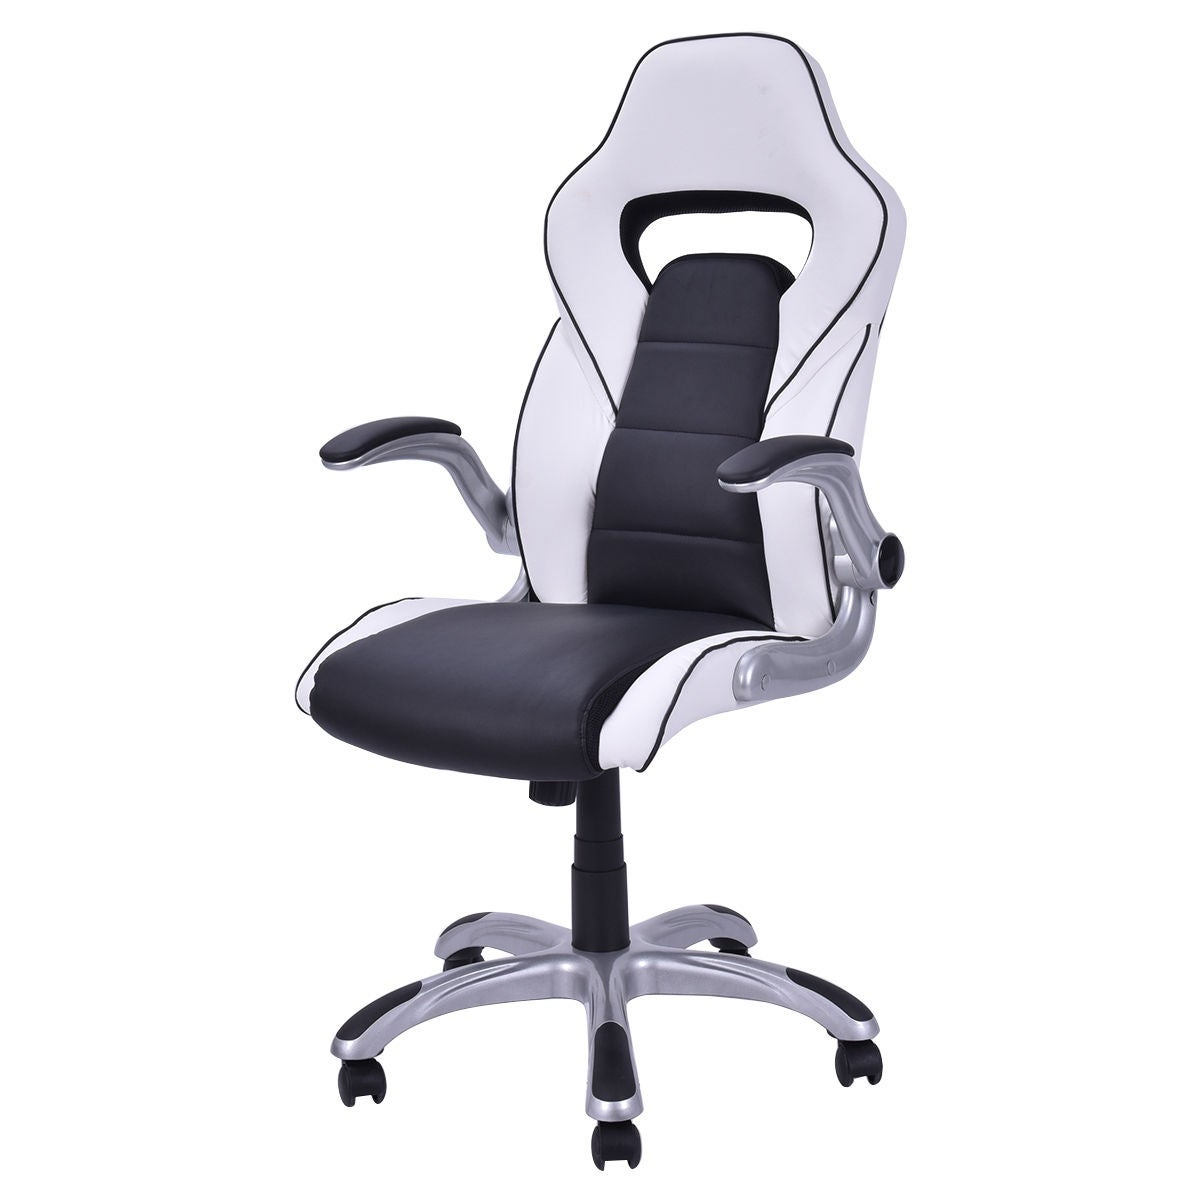 Costway High Back Executive Racing Style Office Chair Gaming Adjule Armrest Free Shipping Today 17056591